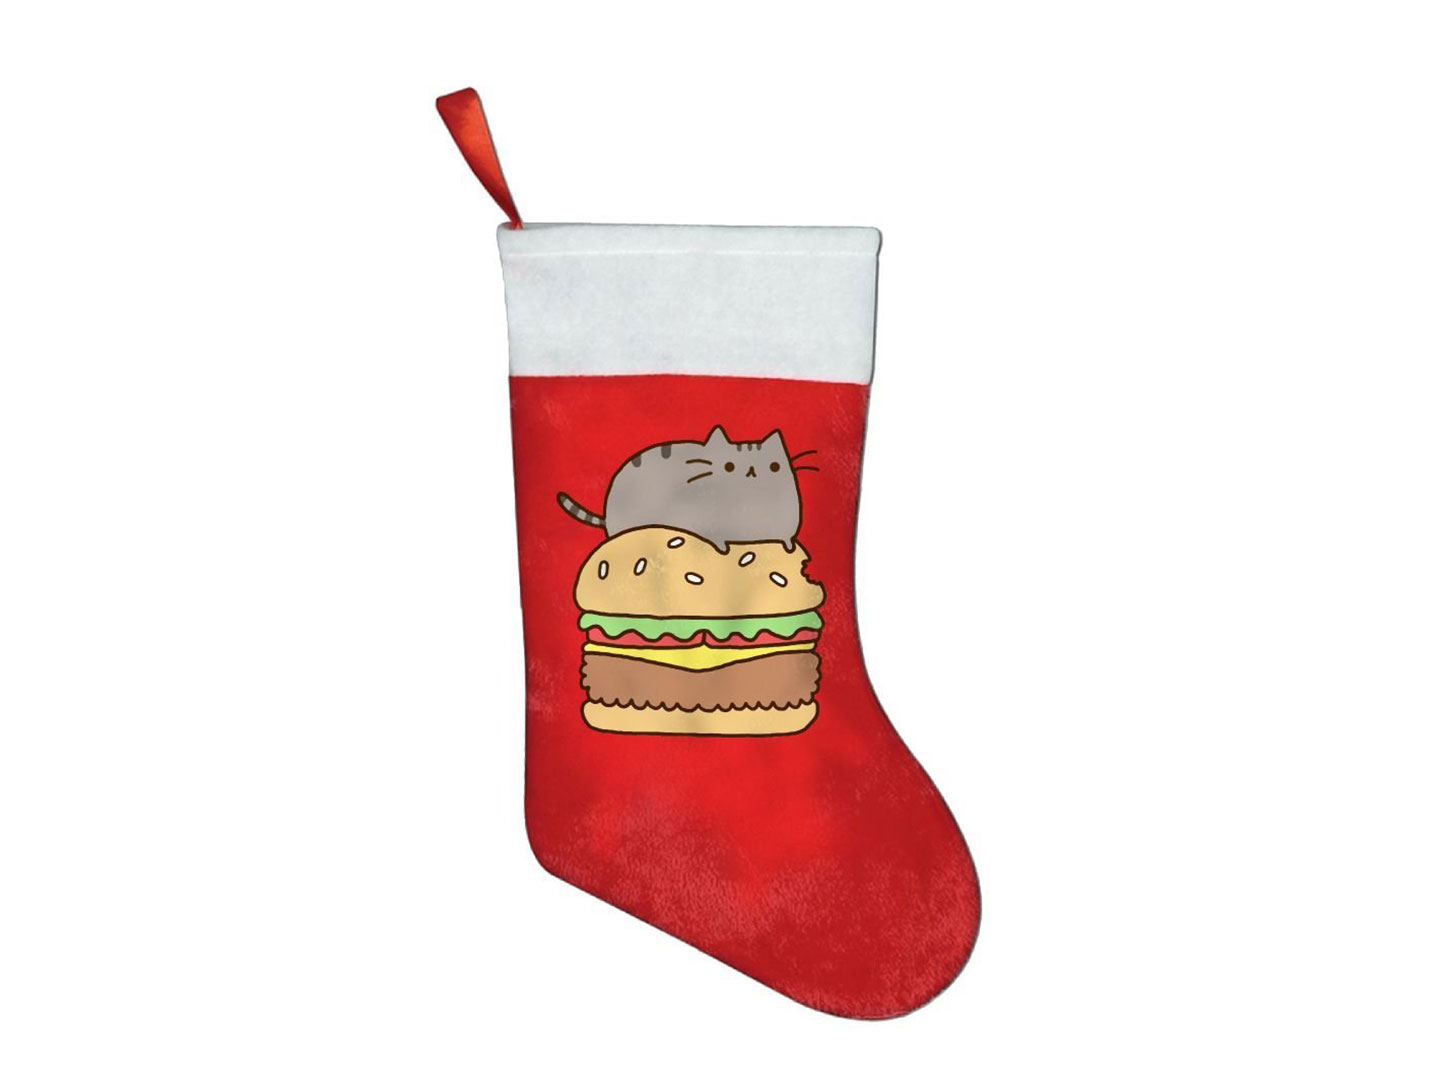 10 Christmas Stockings Inspired by Your Favorite Foods